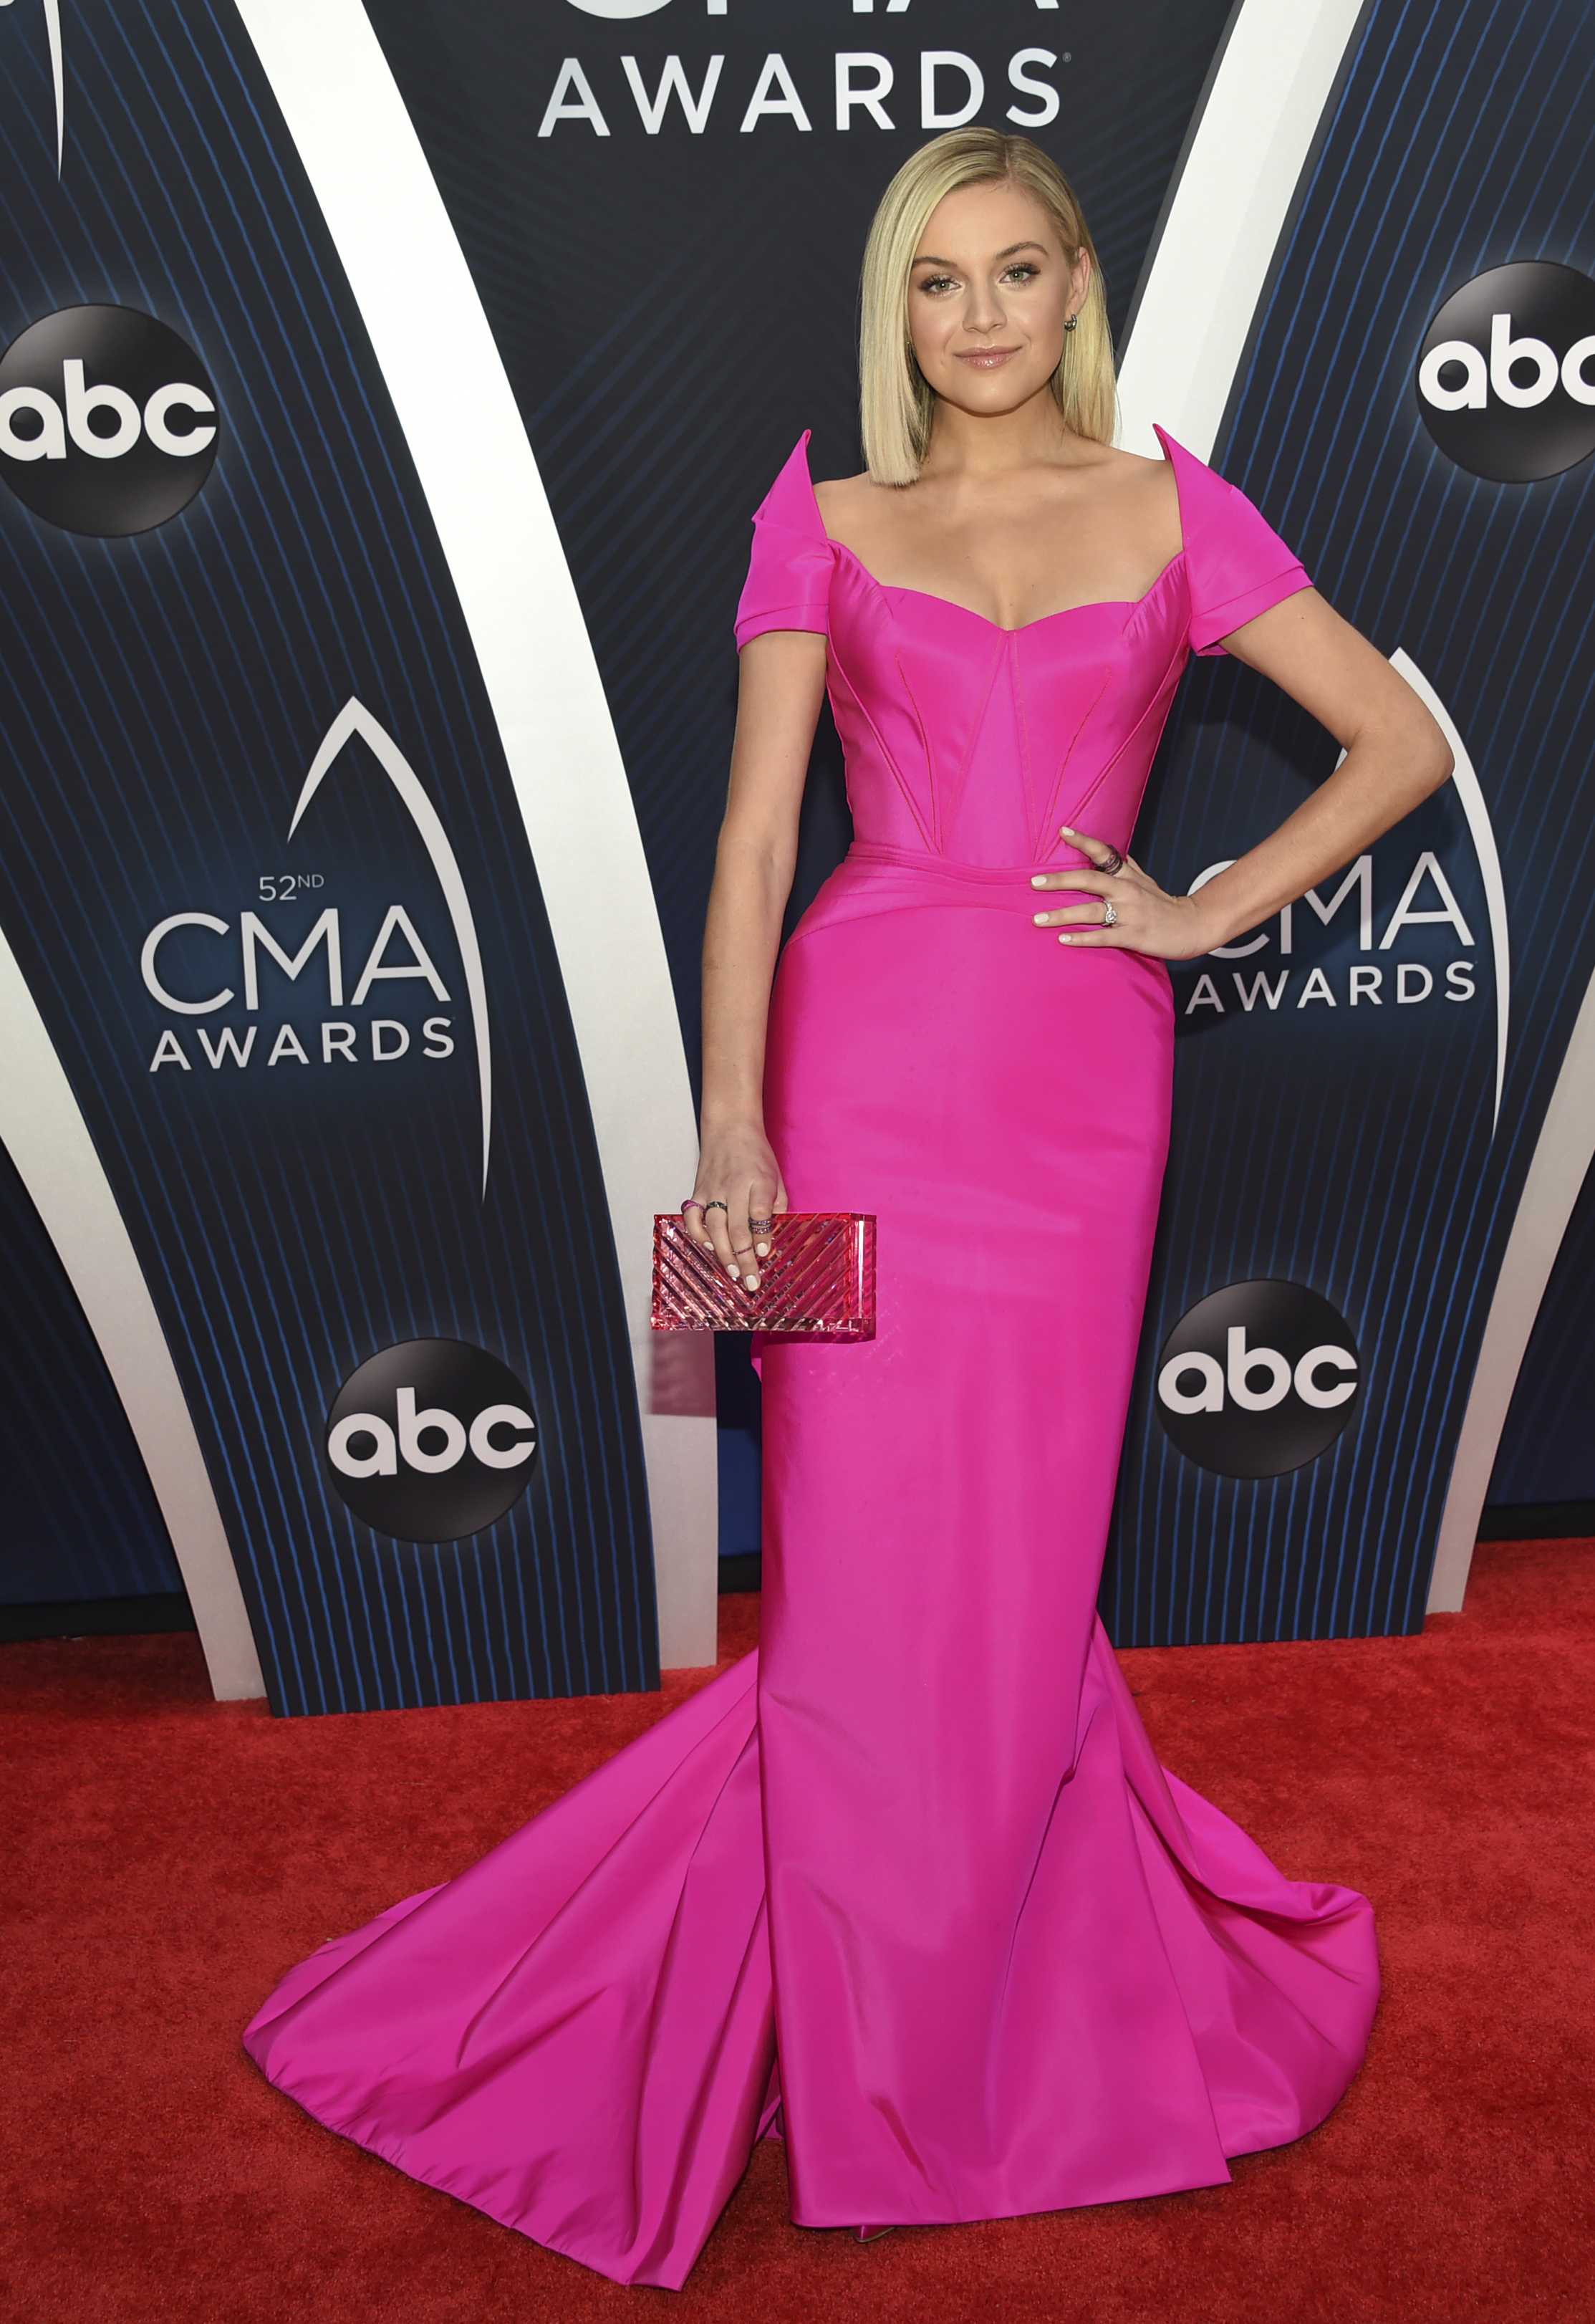 "<div class=""meta image-caption""><div class=""origin-logo origin-image ap""><span>AP</span></div><span class=""caption-text"">Kelsea Ballerini arrives at the 52nd annual CMA Awards at Bridgestone Arena on Wednesday, Nov. 14, 2018, in Nashville, Tenn. (Photo by Evan Agostini/Invision/AP) (Evan Agostini/Invision/AP)</span></div>"